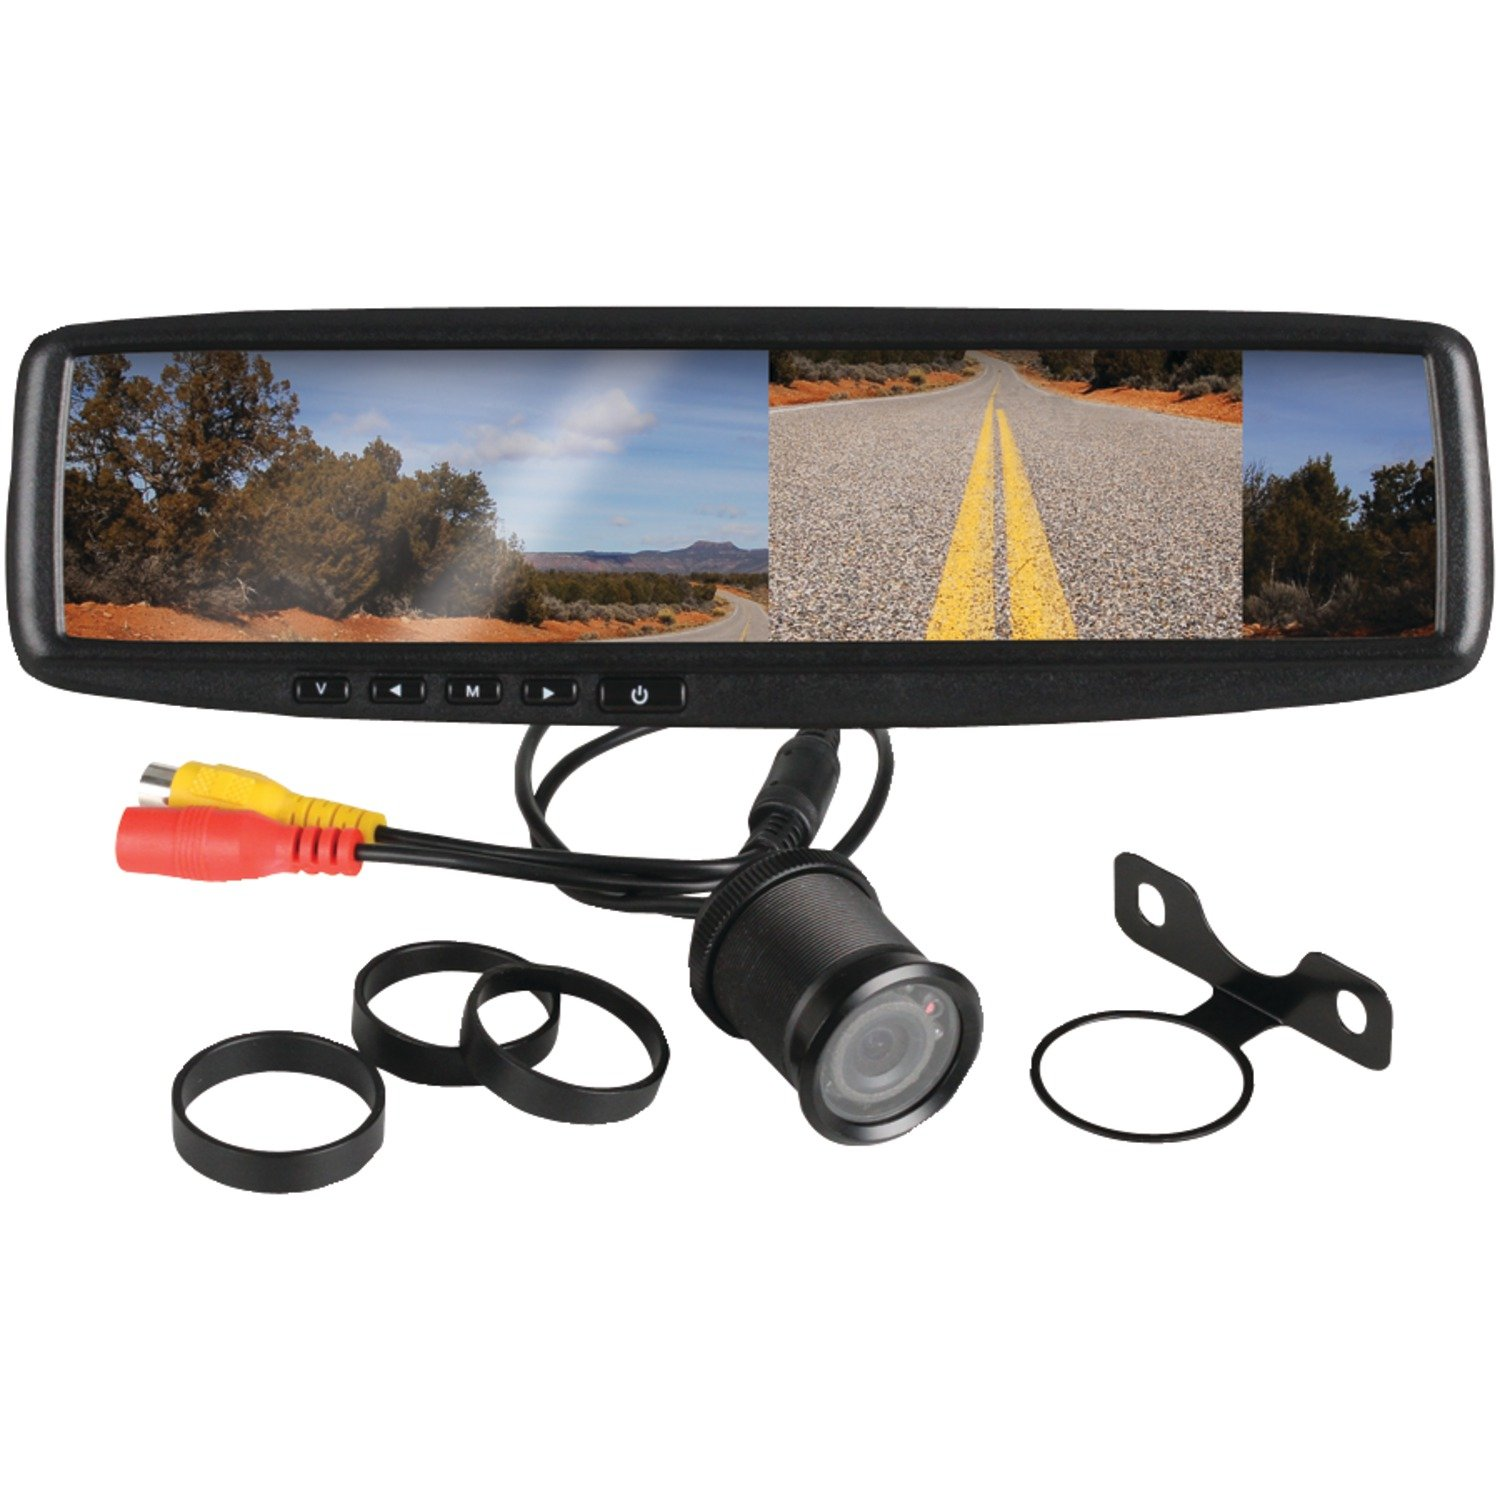 7105D%2BKuYoL._SL1500_ amazon com boss audio bv430rvm rear view car mirror with 4 3 inch Koolertron Backup Camera Installation Diagram at gsmx.co